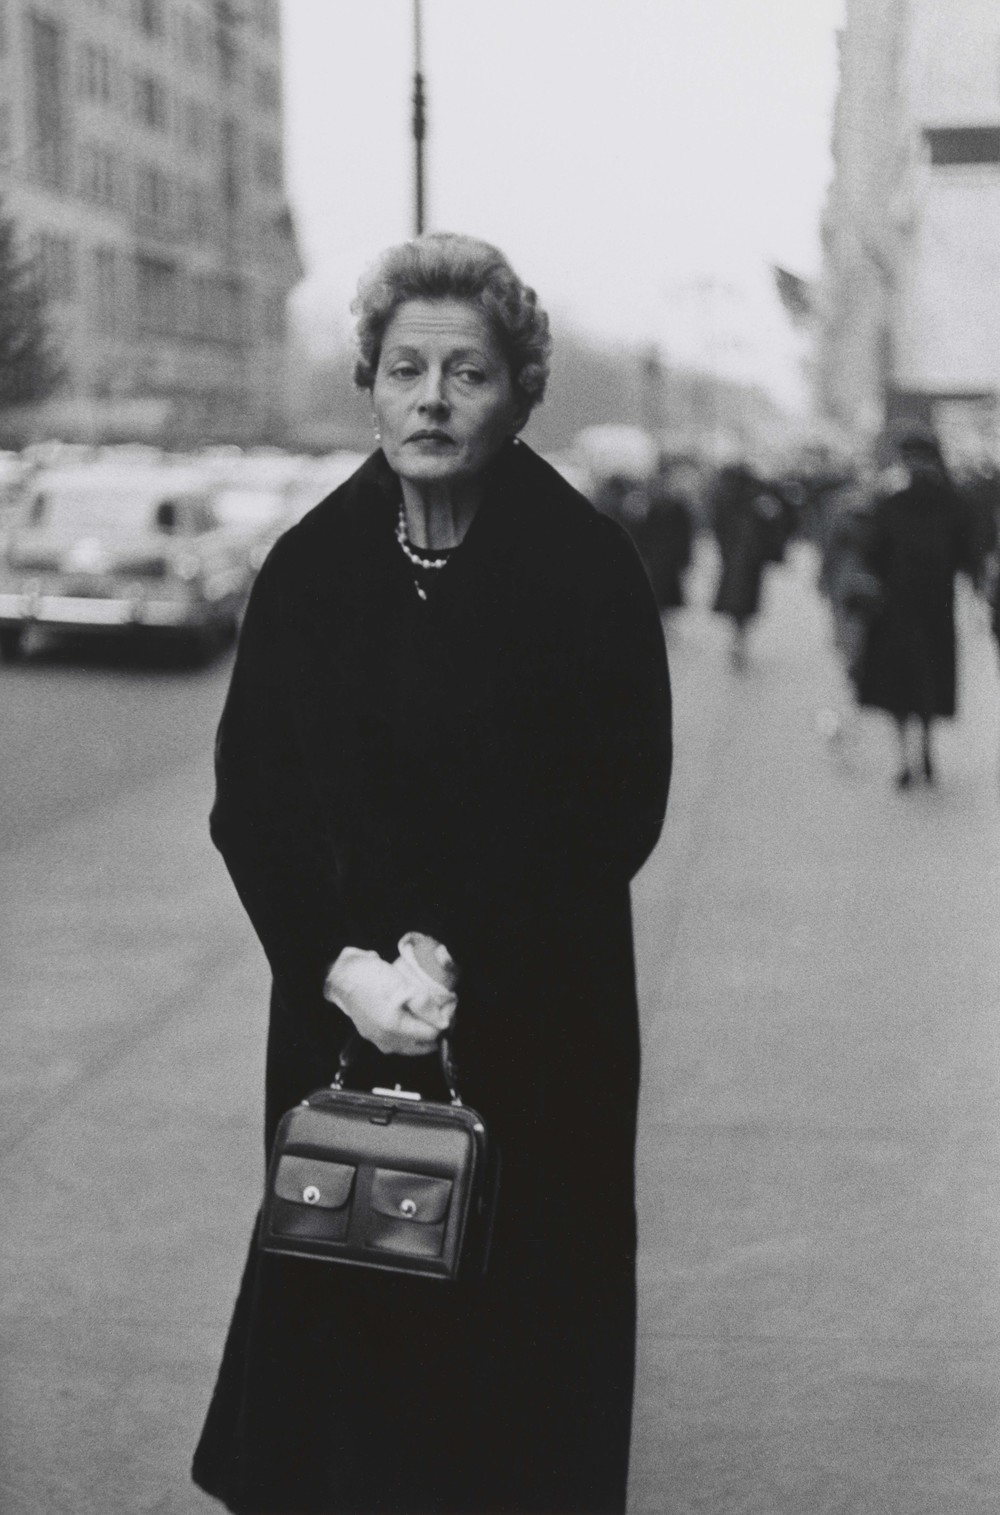 Woman with white gloves and a pocket book, N.Y.C. 1956 © The Estate of Diane Arbus, LLC. All Rights Reserved